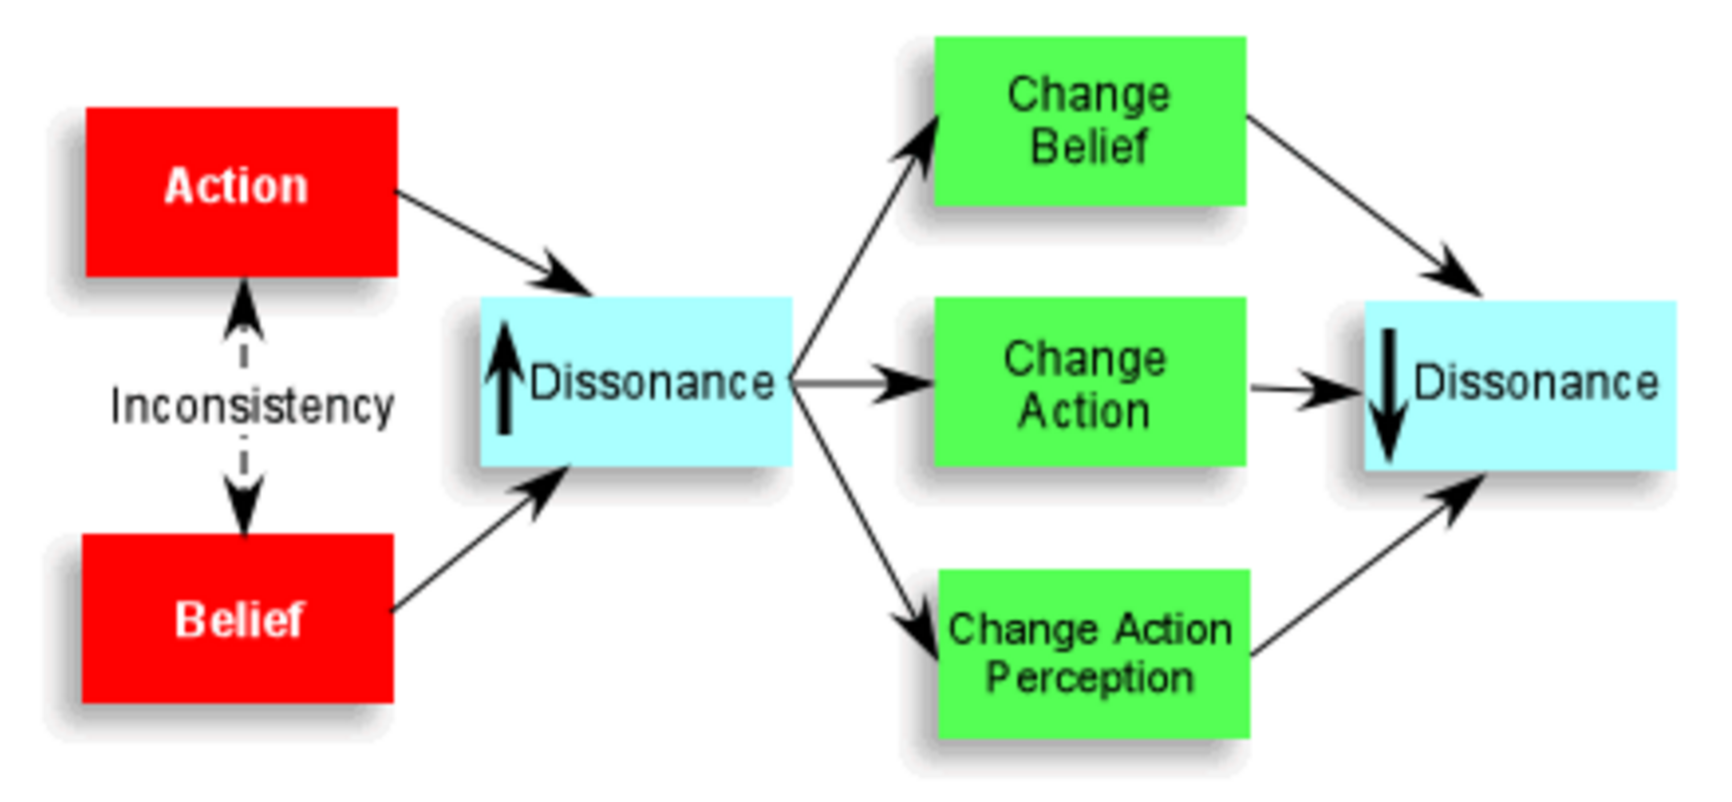 the use of cognitive dissonance in marketing Dissonance in marketing causes a conflict or tension within a consumer considering a product purchase cognitive dissonance definition.